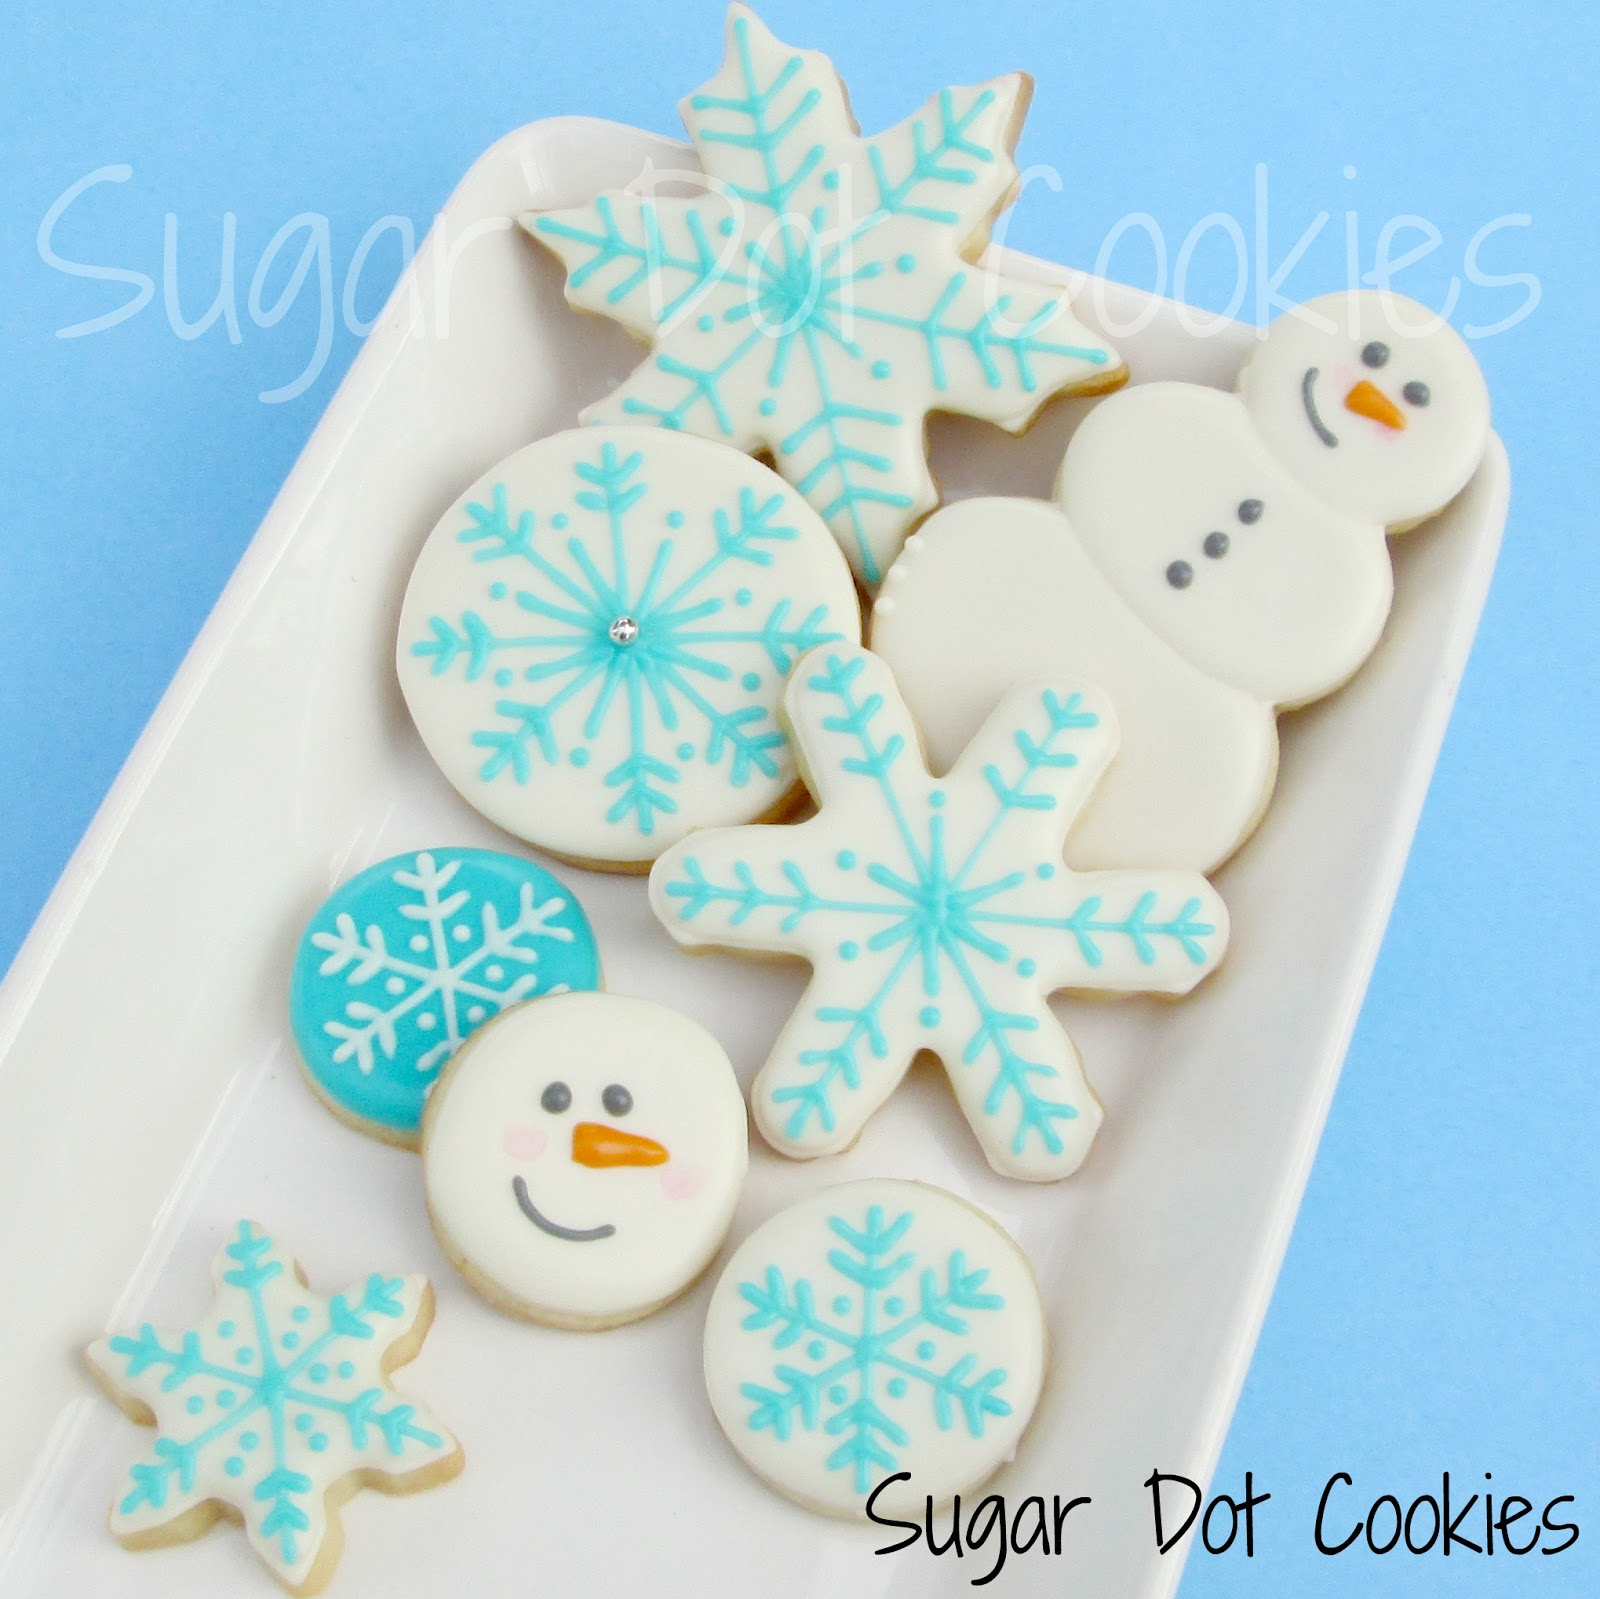 Sugar Dot Cookies Super Simple Winter Sugar Cookies